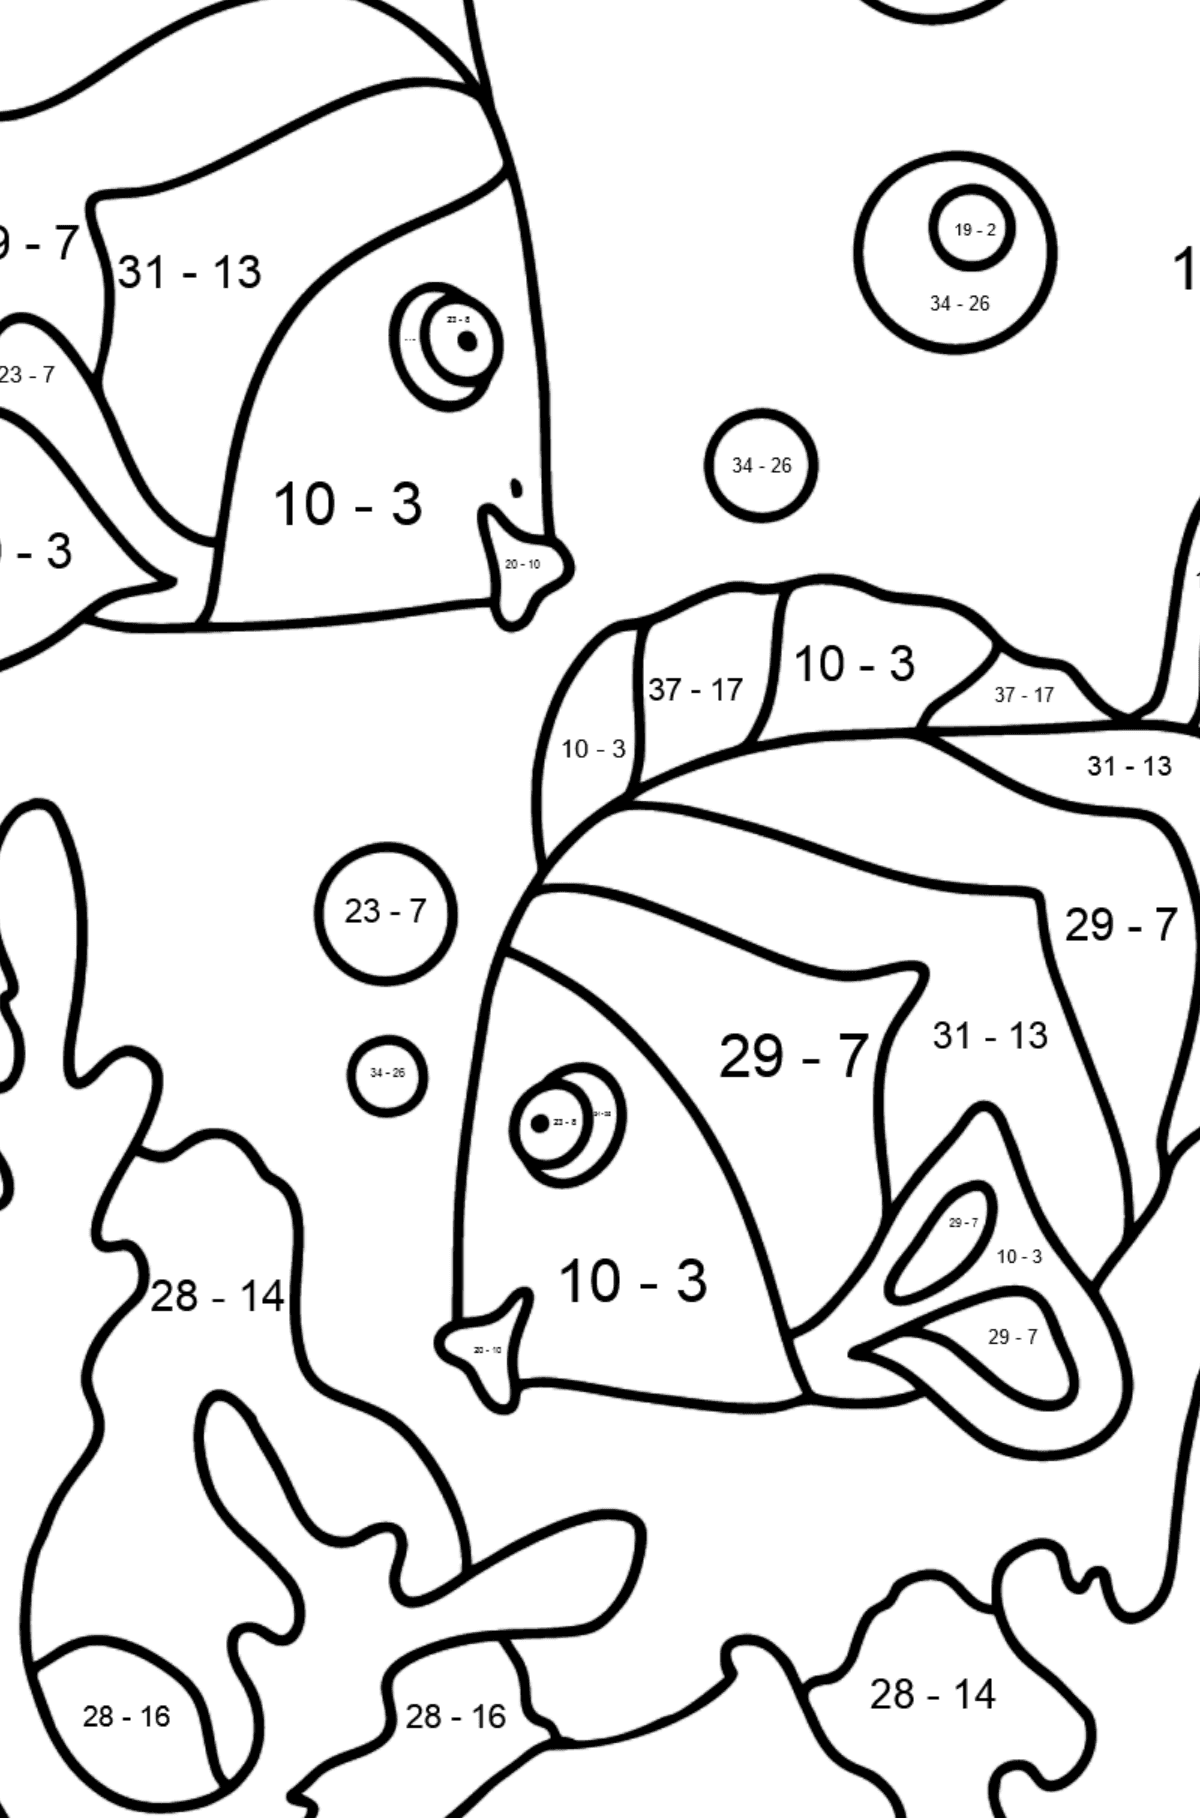 Coloring Page - Fish are Swimming Very Energetically - Math Coloring - Subtraction for Kids